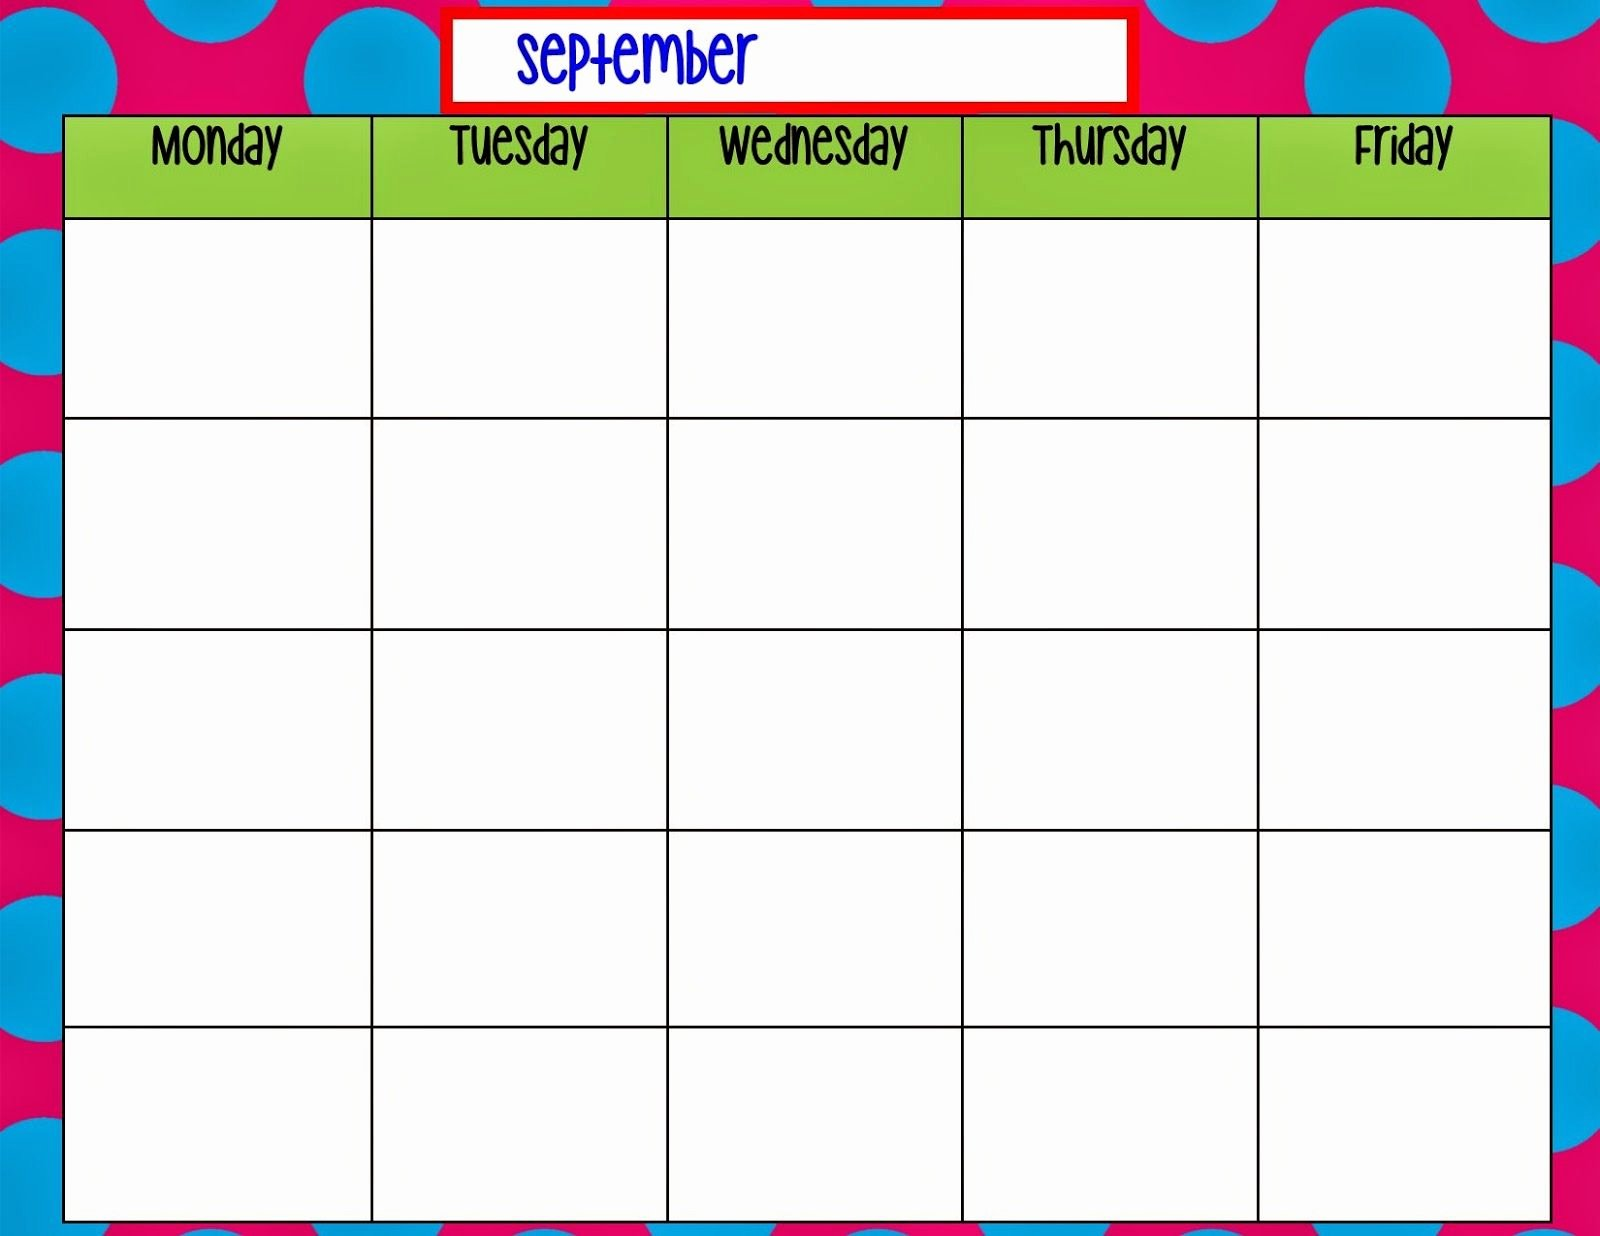 Monday to Friday Schedule Template Lovely Monday Through Friday Calendar Template